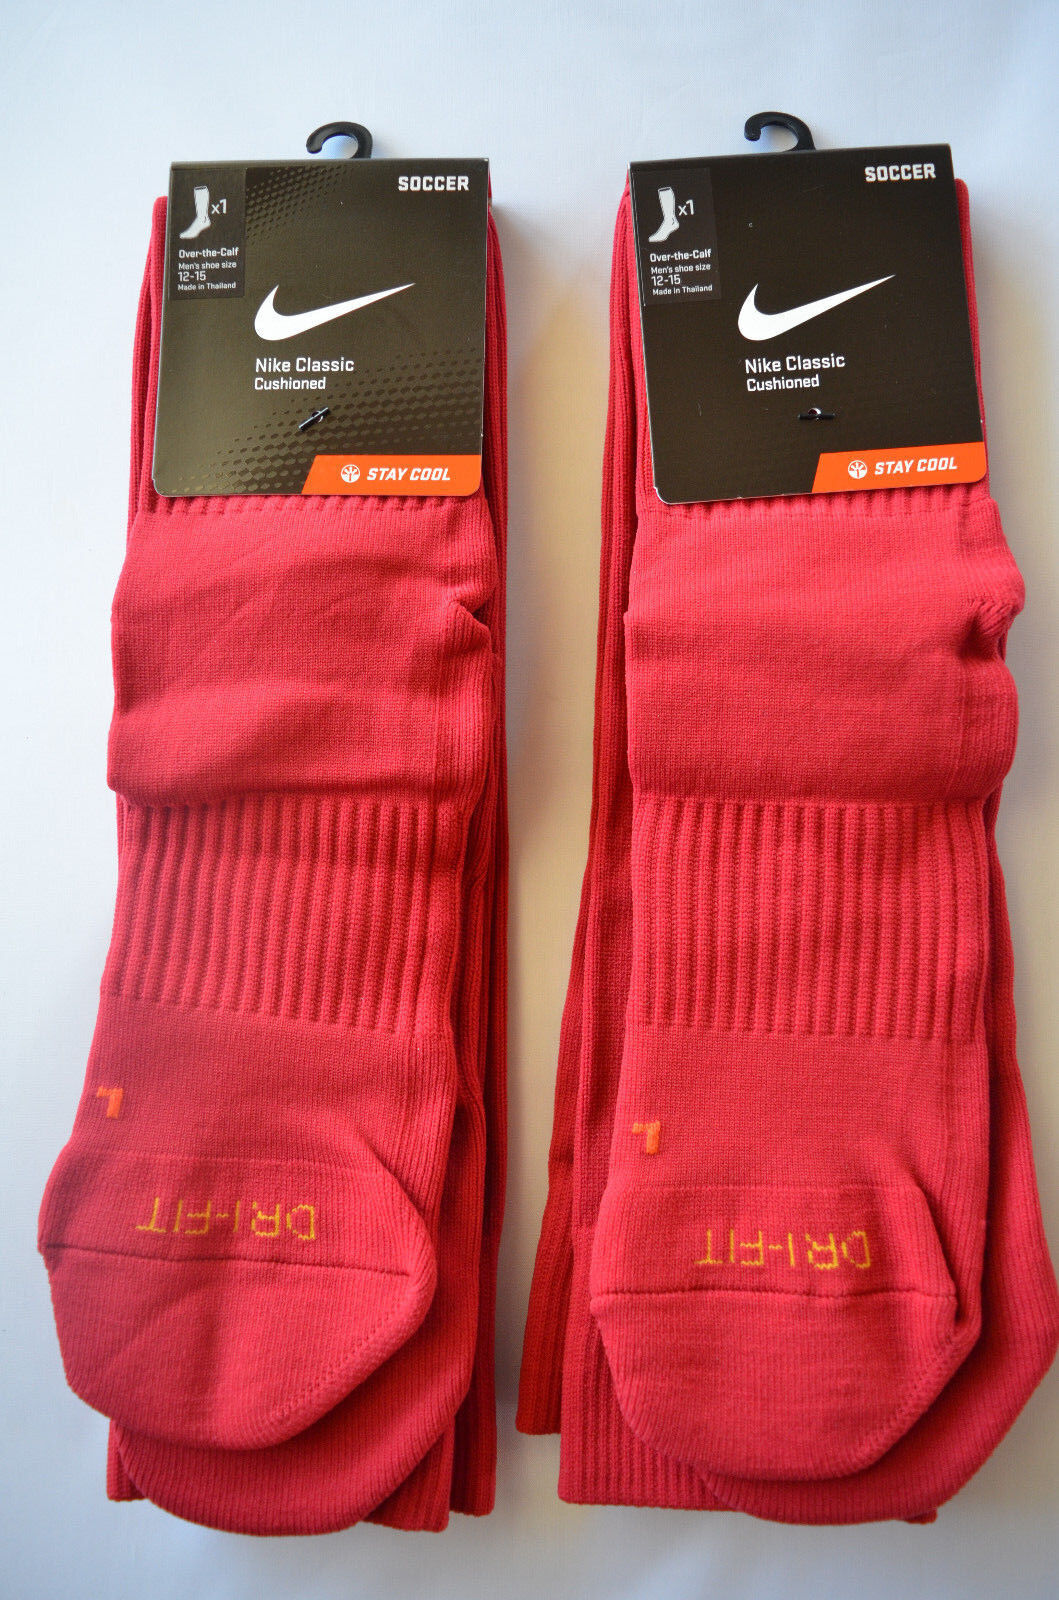 Nike Classic Cushioned Soccer Over-the-Calf Soccer Socks PS